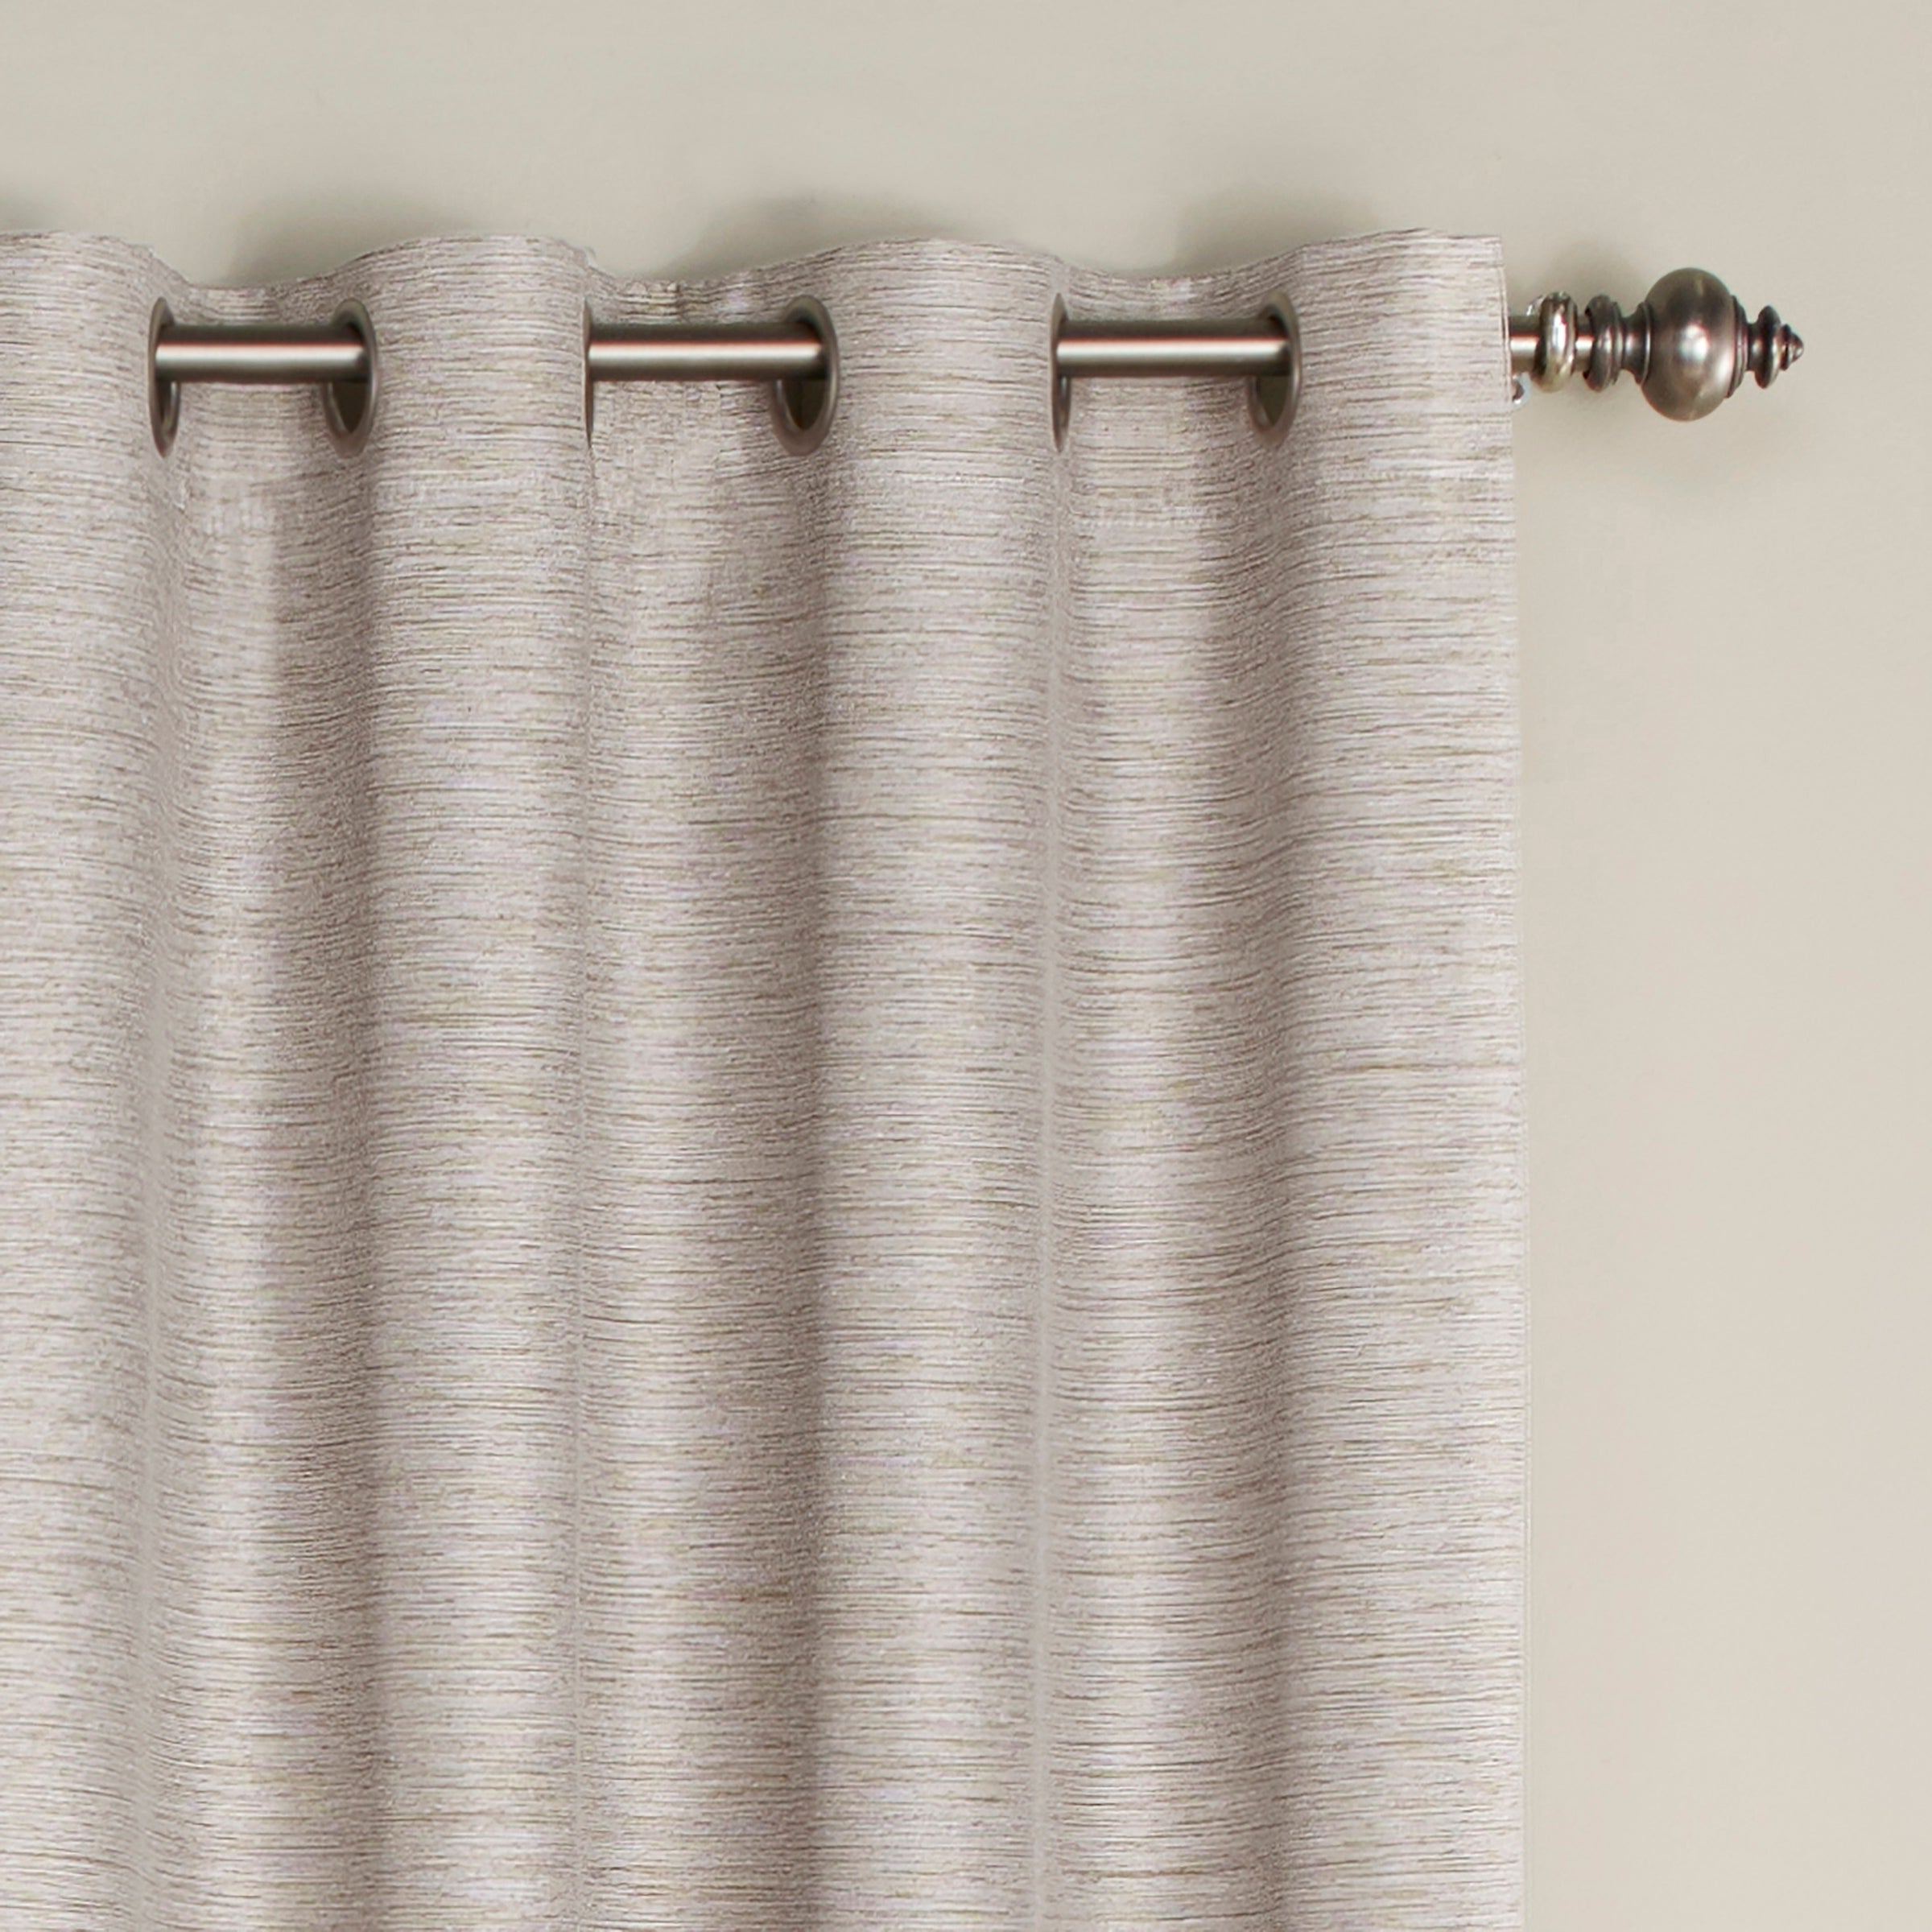 Most Popular Eclipse Newport Blackout Curtain Panels Pertaining To Eclipse Newport Blackout Curtain Panel – 52x (View 4 of 20)